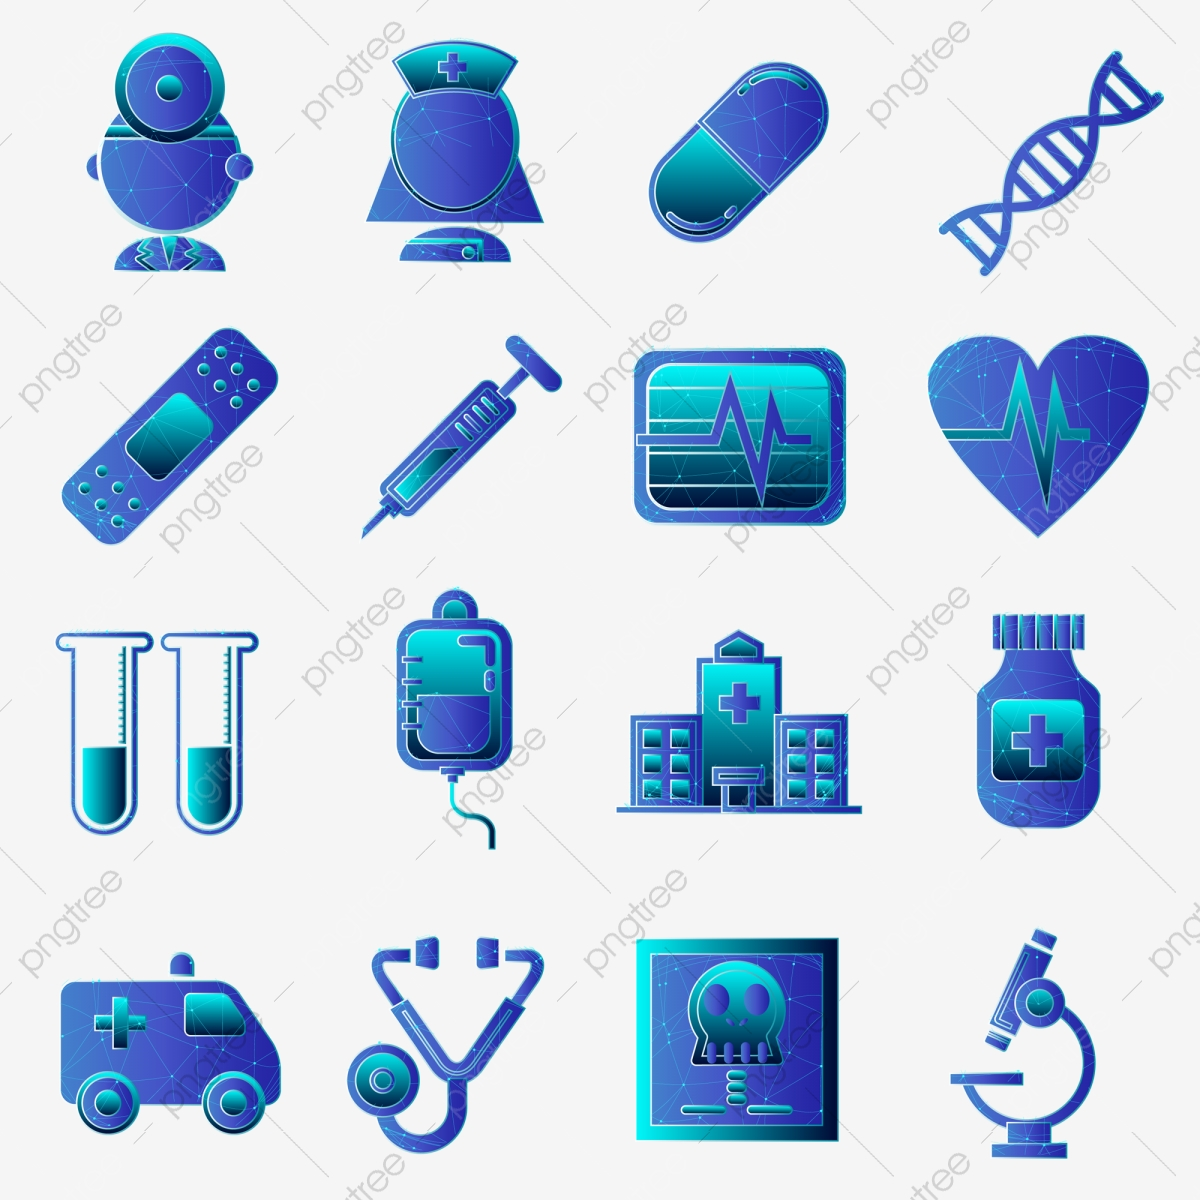 Biomedical Technology Clipart Background